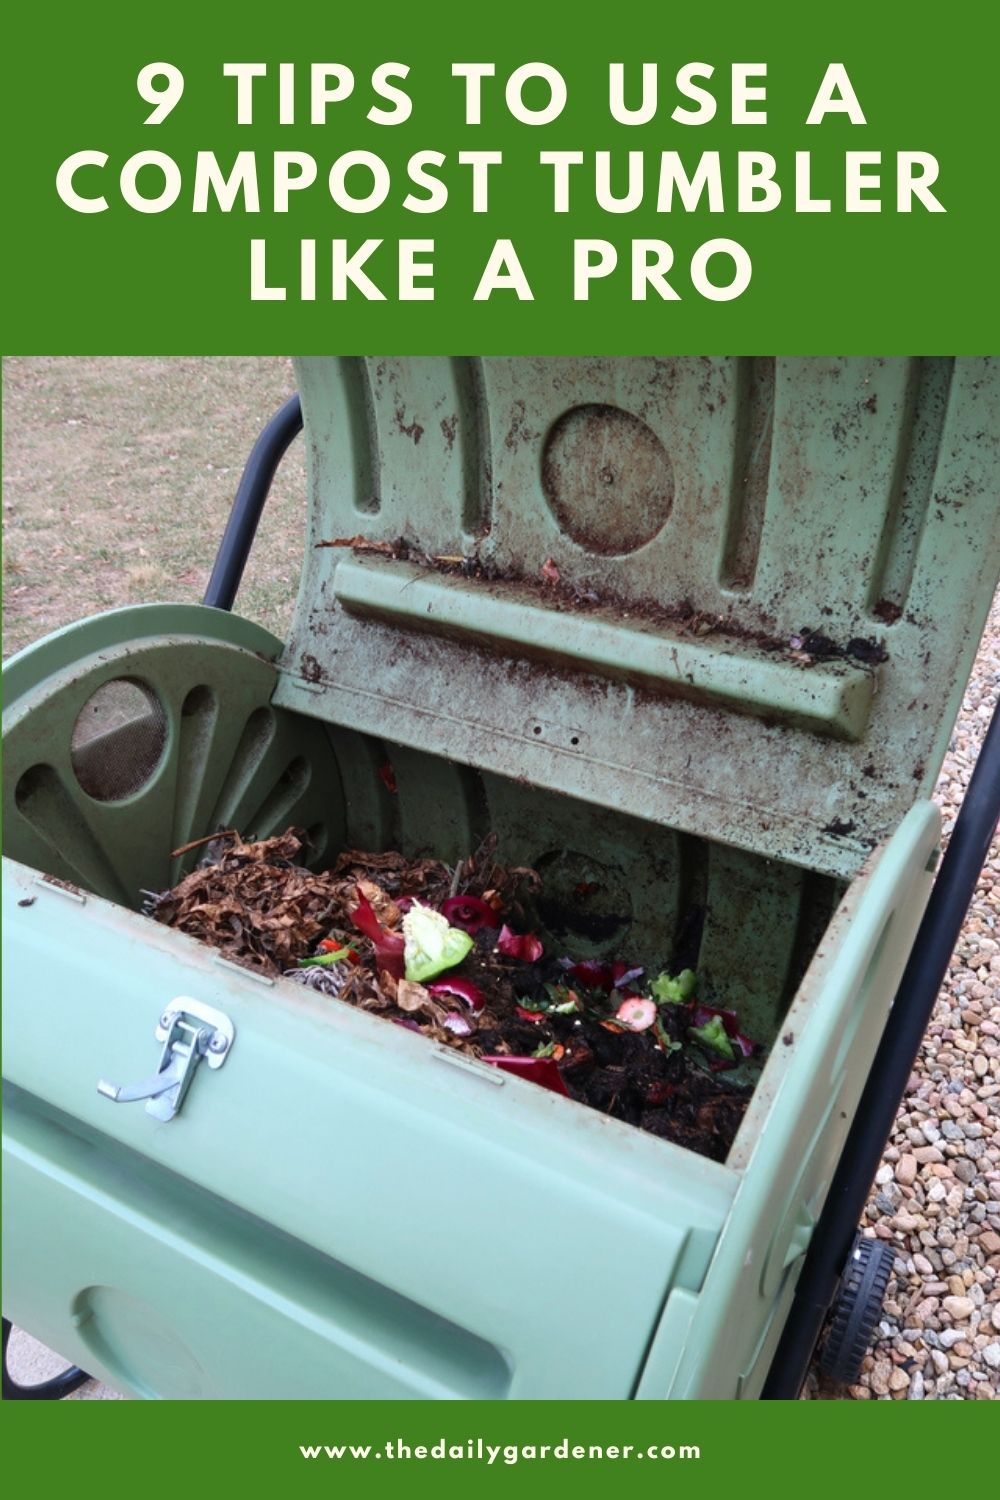 9 Tips to Use a Compost Tumbler Like a Pro 2